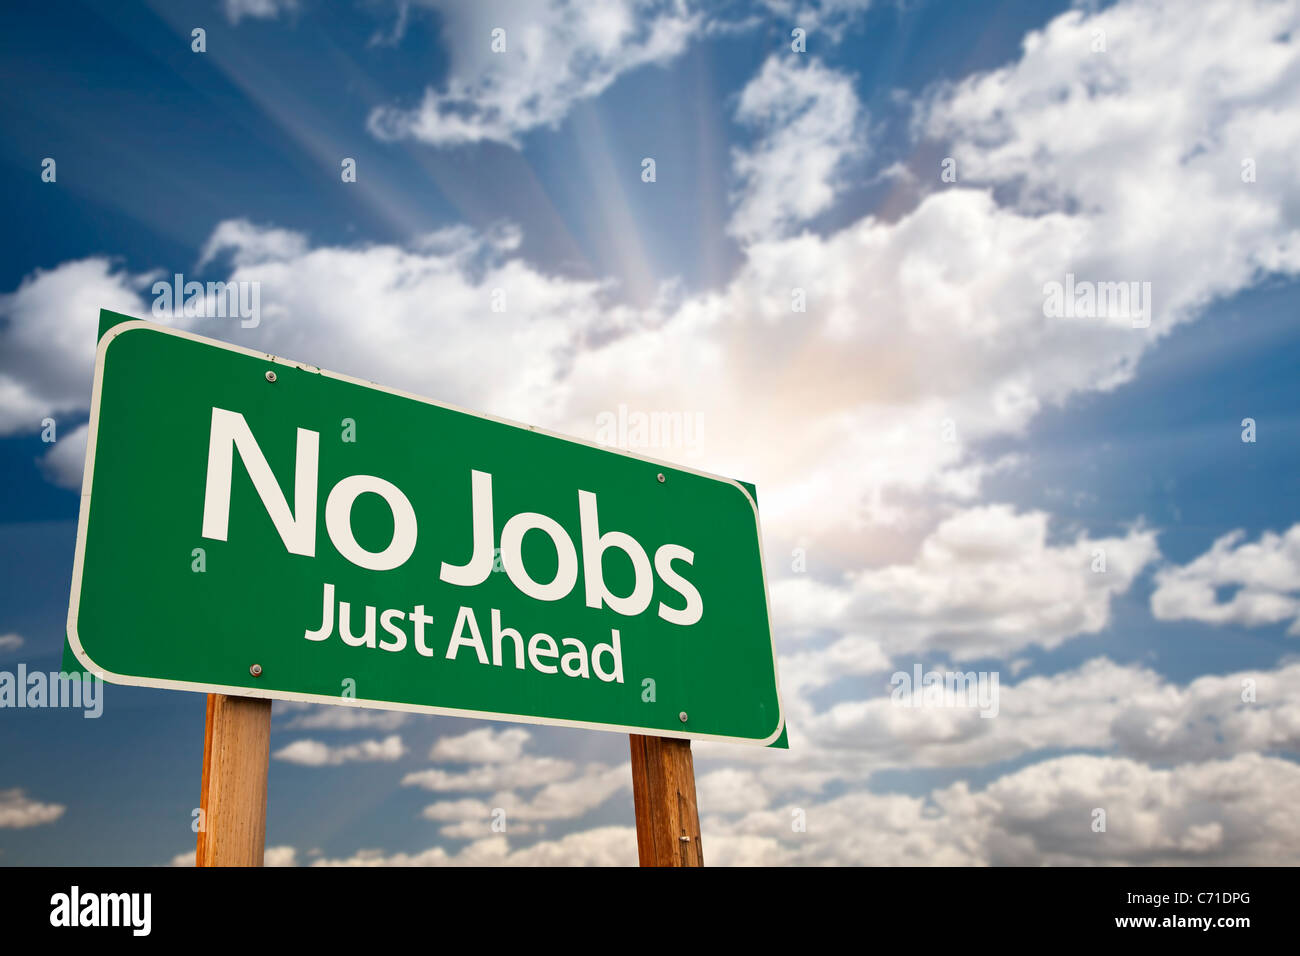 No Jobs Green Road Sign Against Dramatic Sky, Clouds and Sunburst. - Stock Image